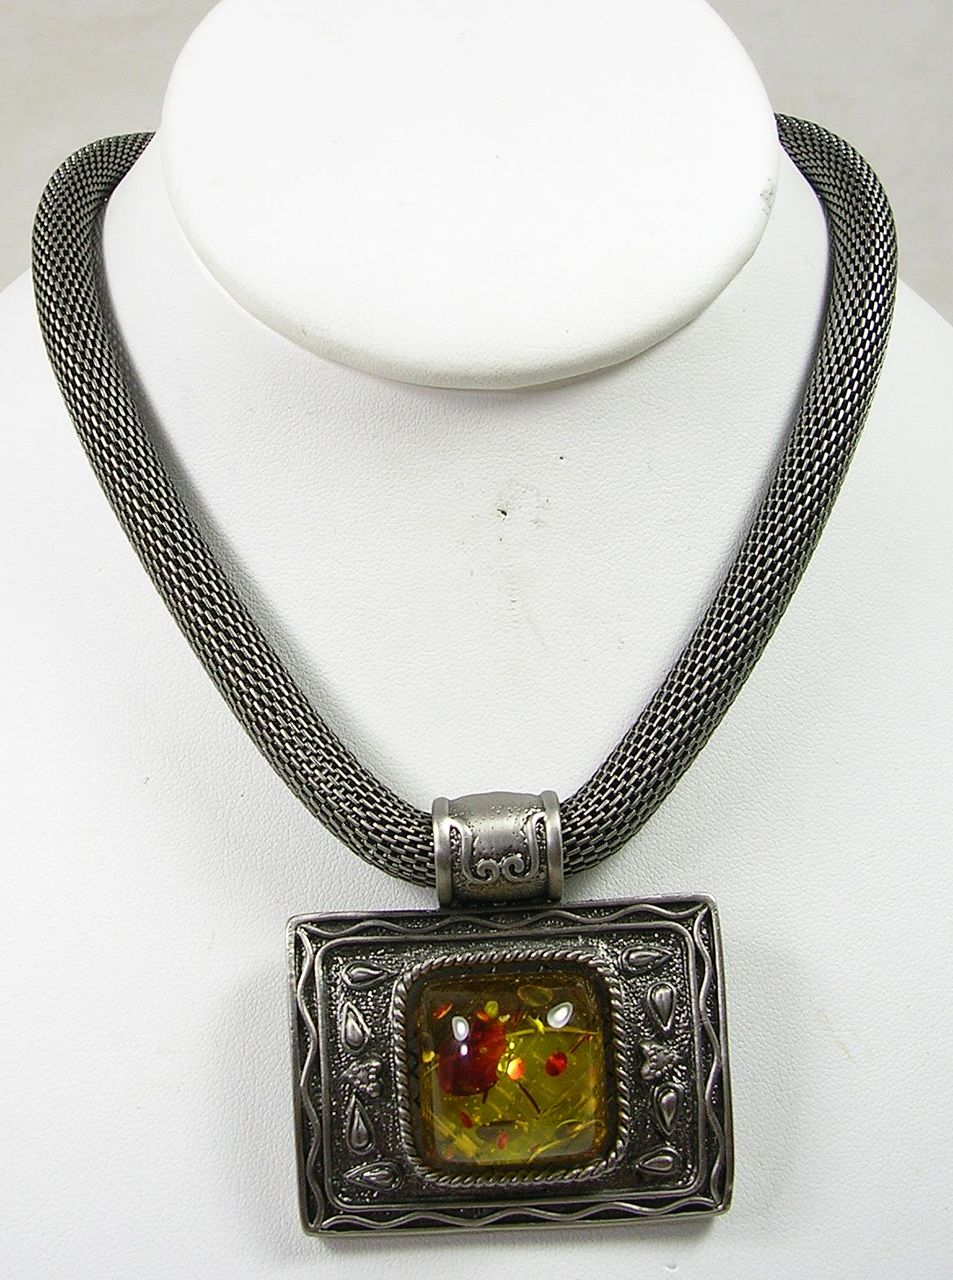 Vintage Mesh Necklace with a Glass Amber Stone and Magnetic Clasp – Beautiful!